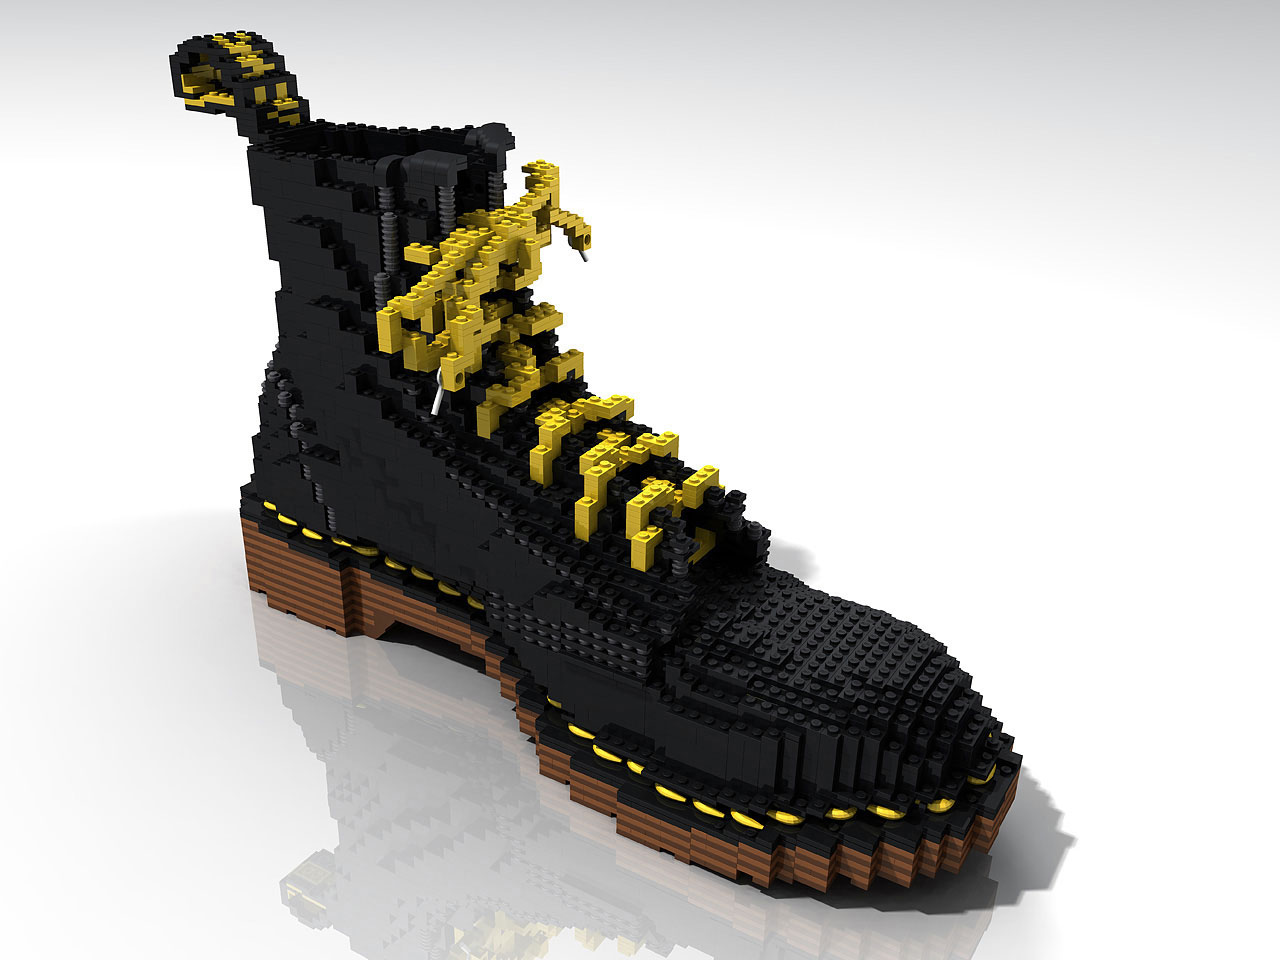 dr-martens-shoes-lego-amida-05-left.jpg